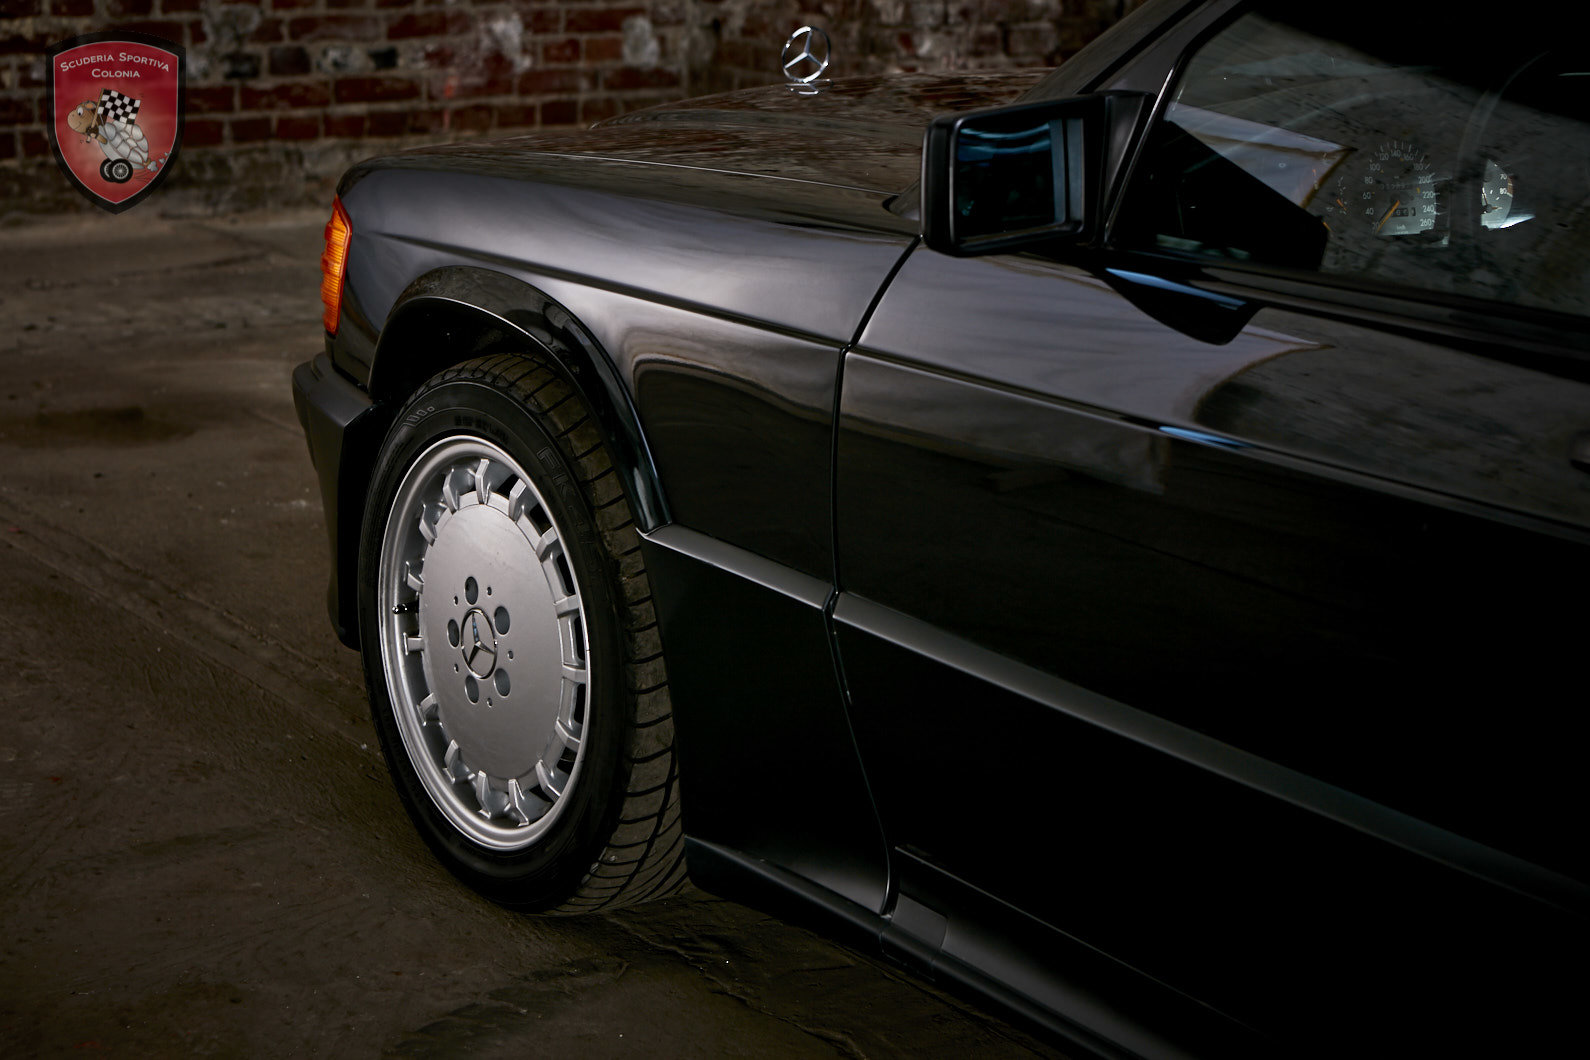 1990 Mercedes Benz 190 E  2.5   16 V For Sale (picture 7 of 12)